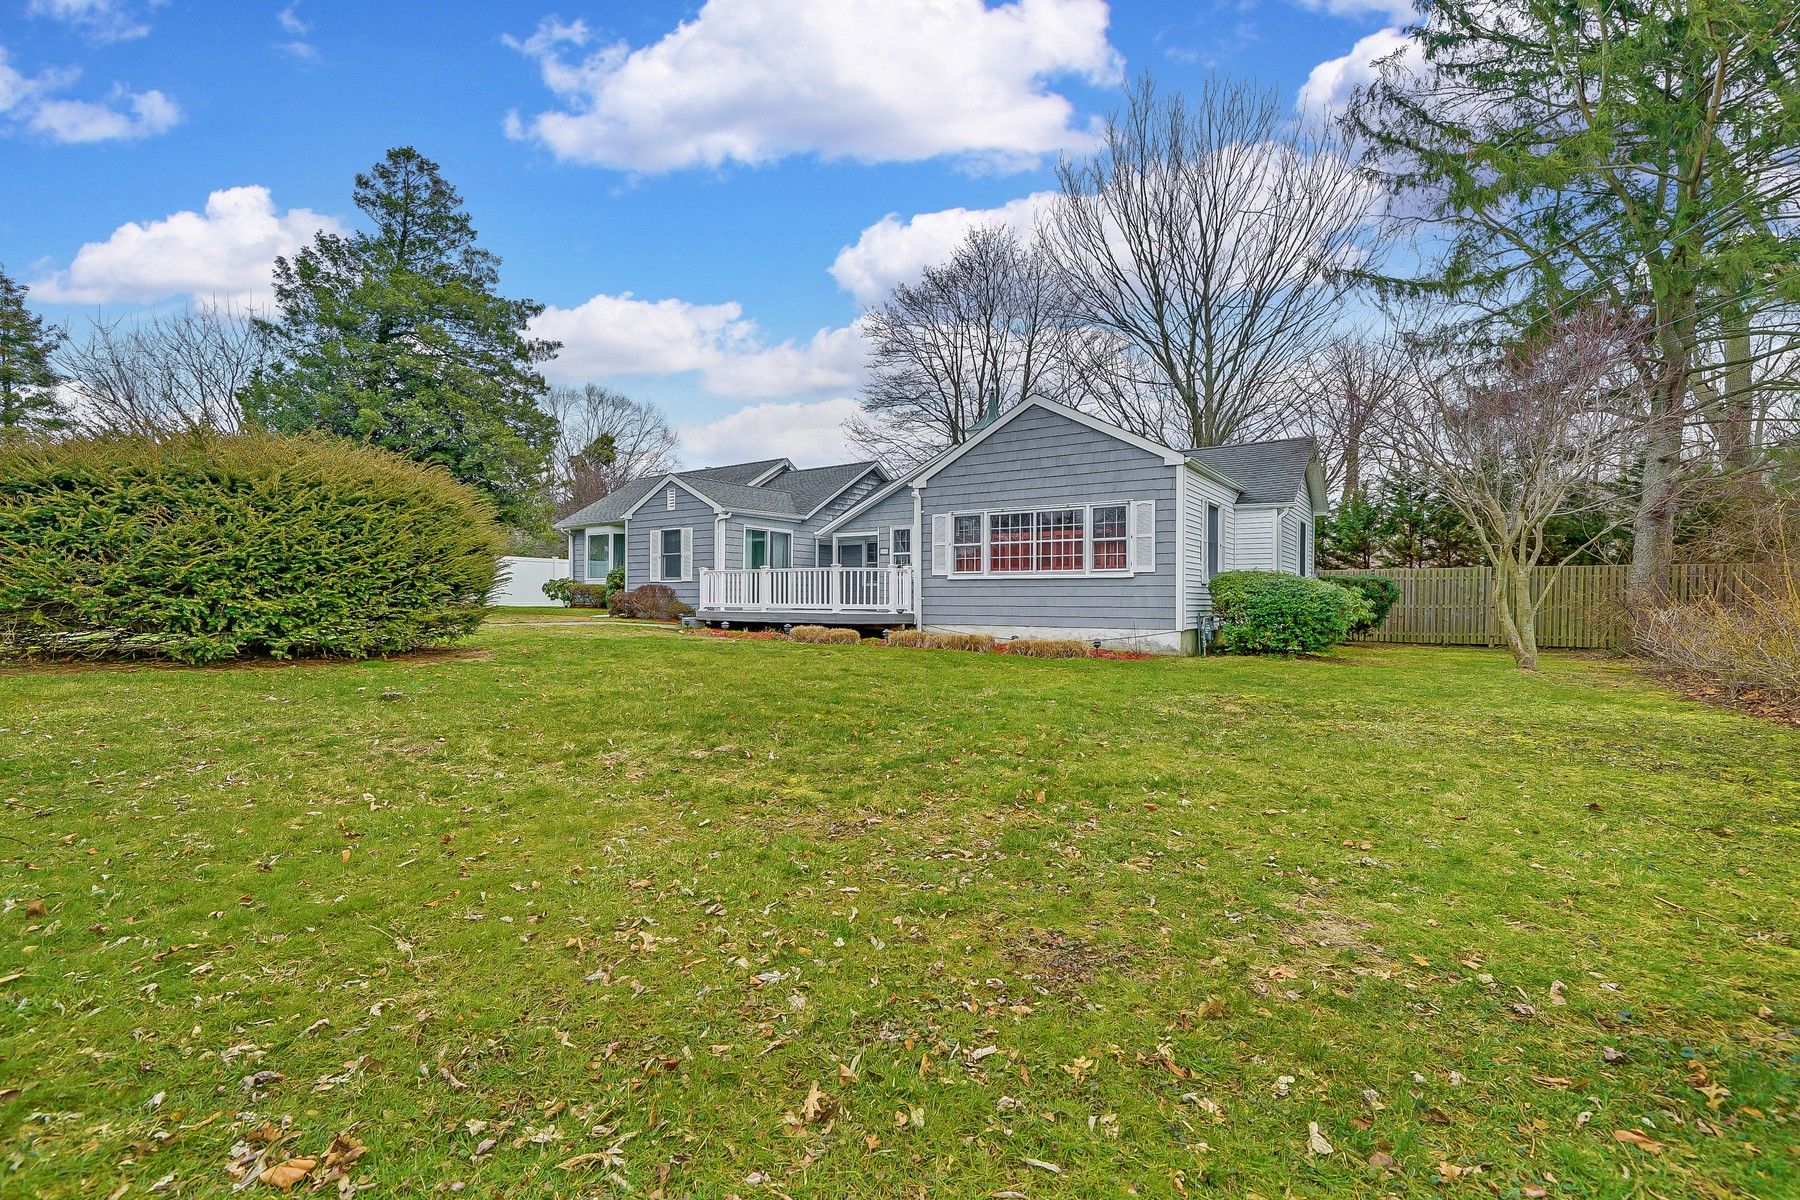 Single Family Home for Sale at Highview Park 2316 Camden Ave, Manasquan, New Jersey 08736 United States